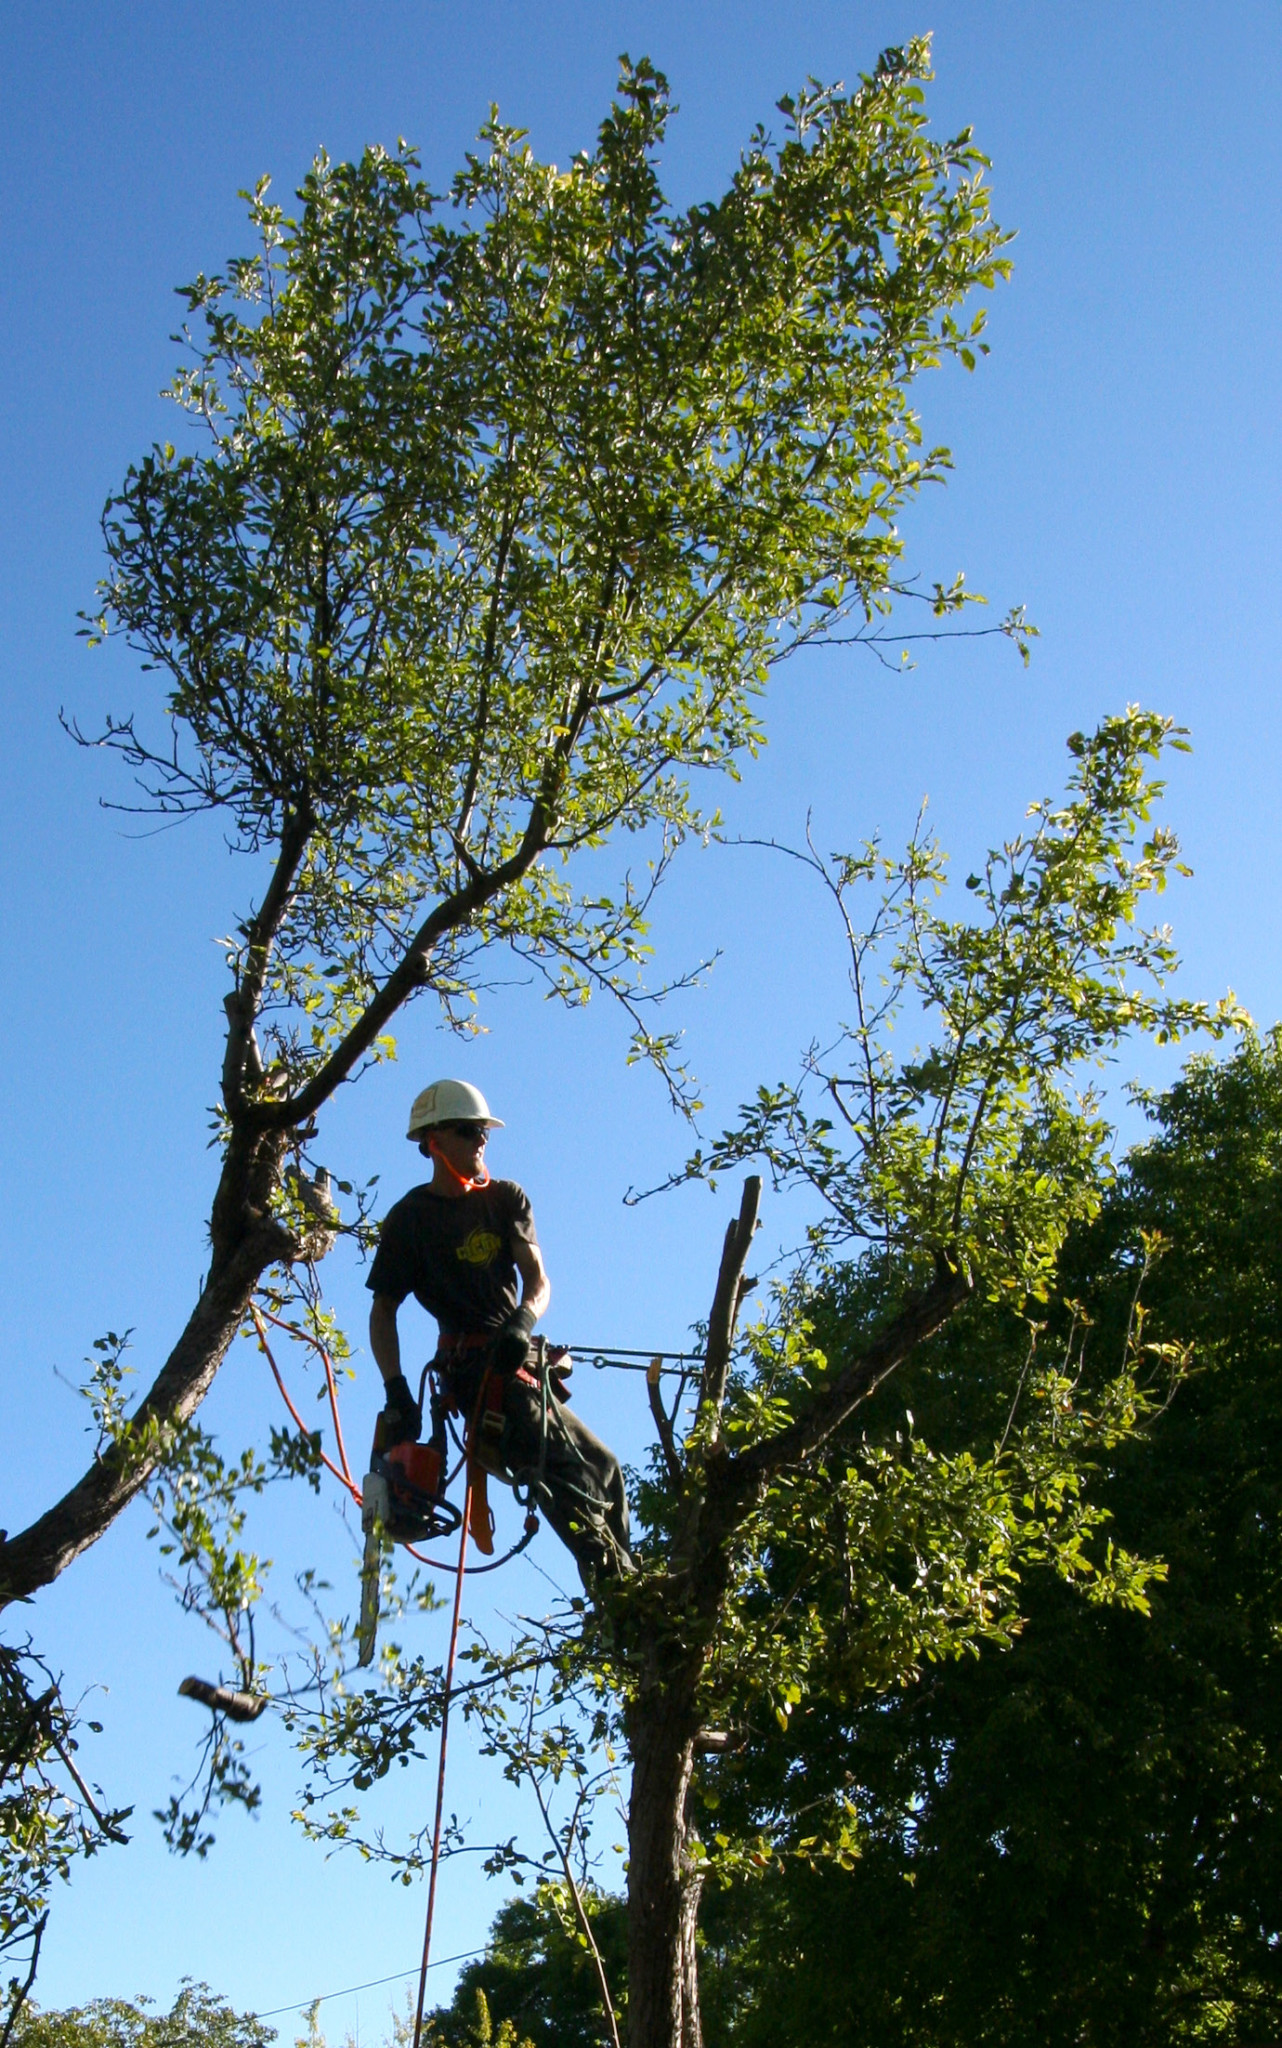 Tree Cutting is a dangerous profession